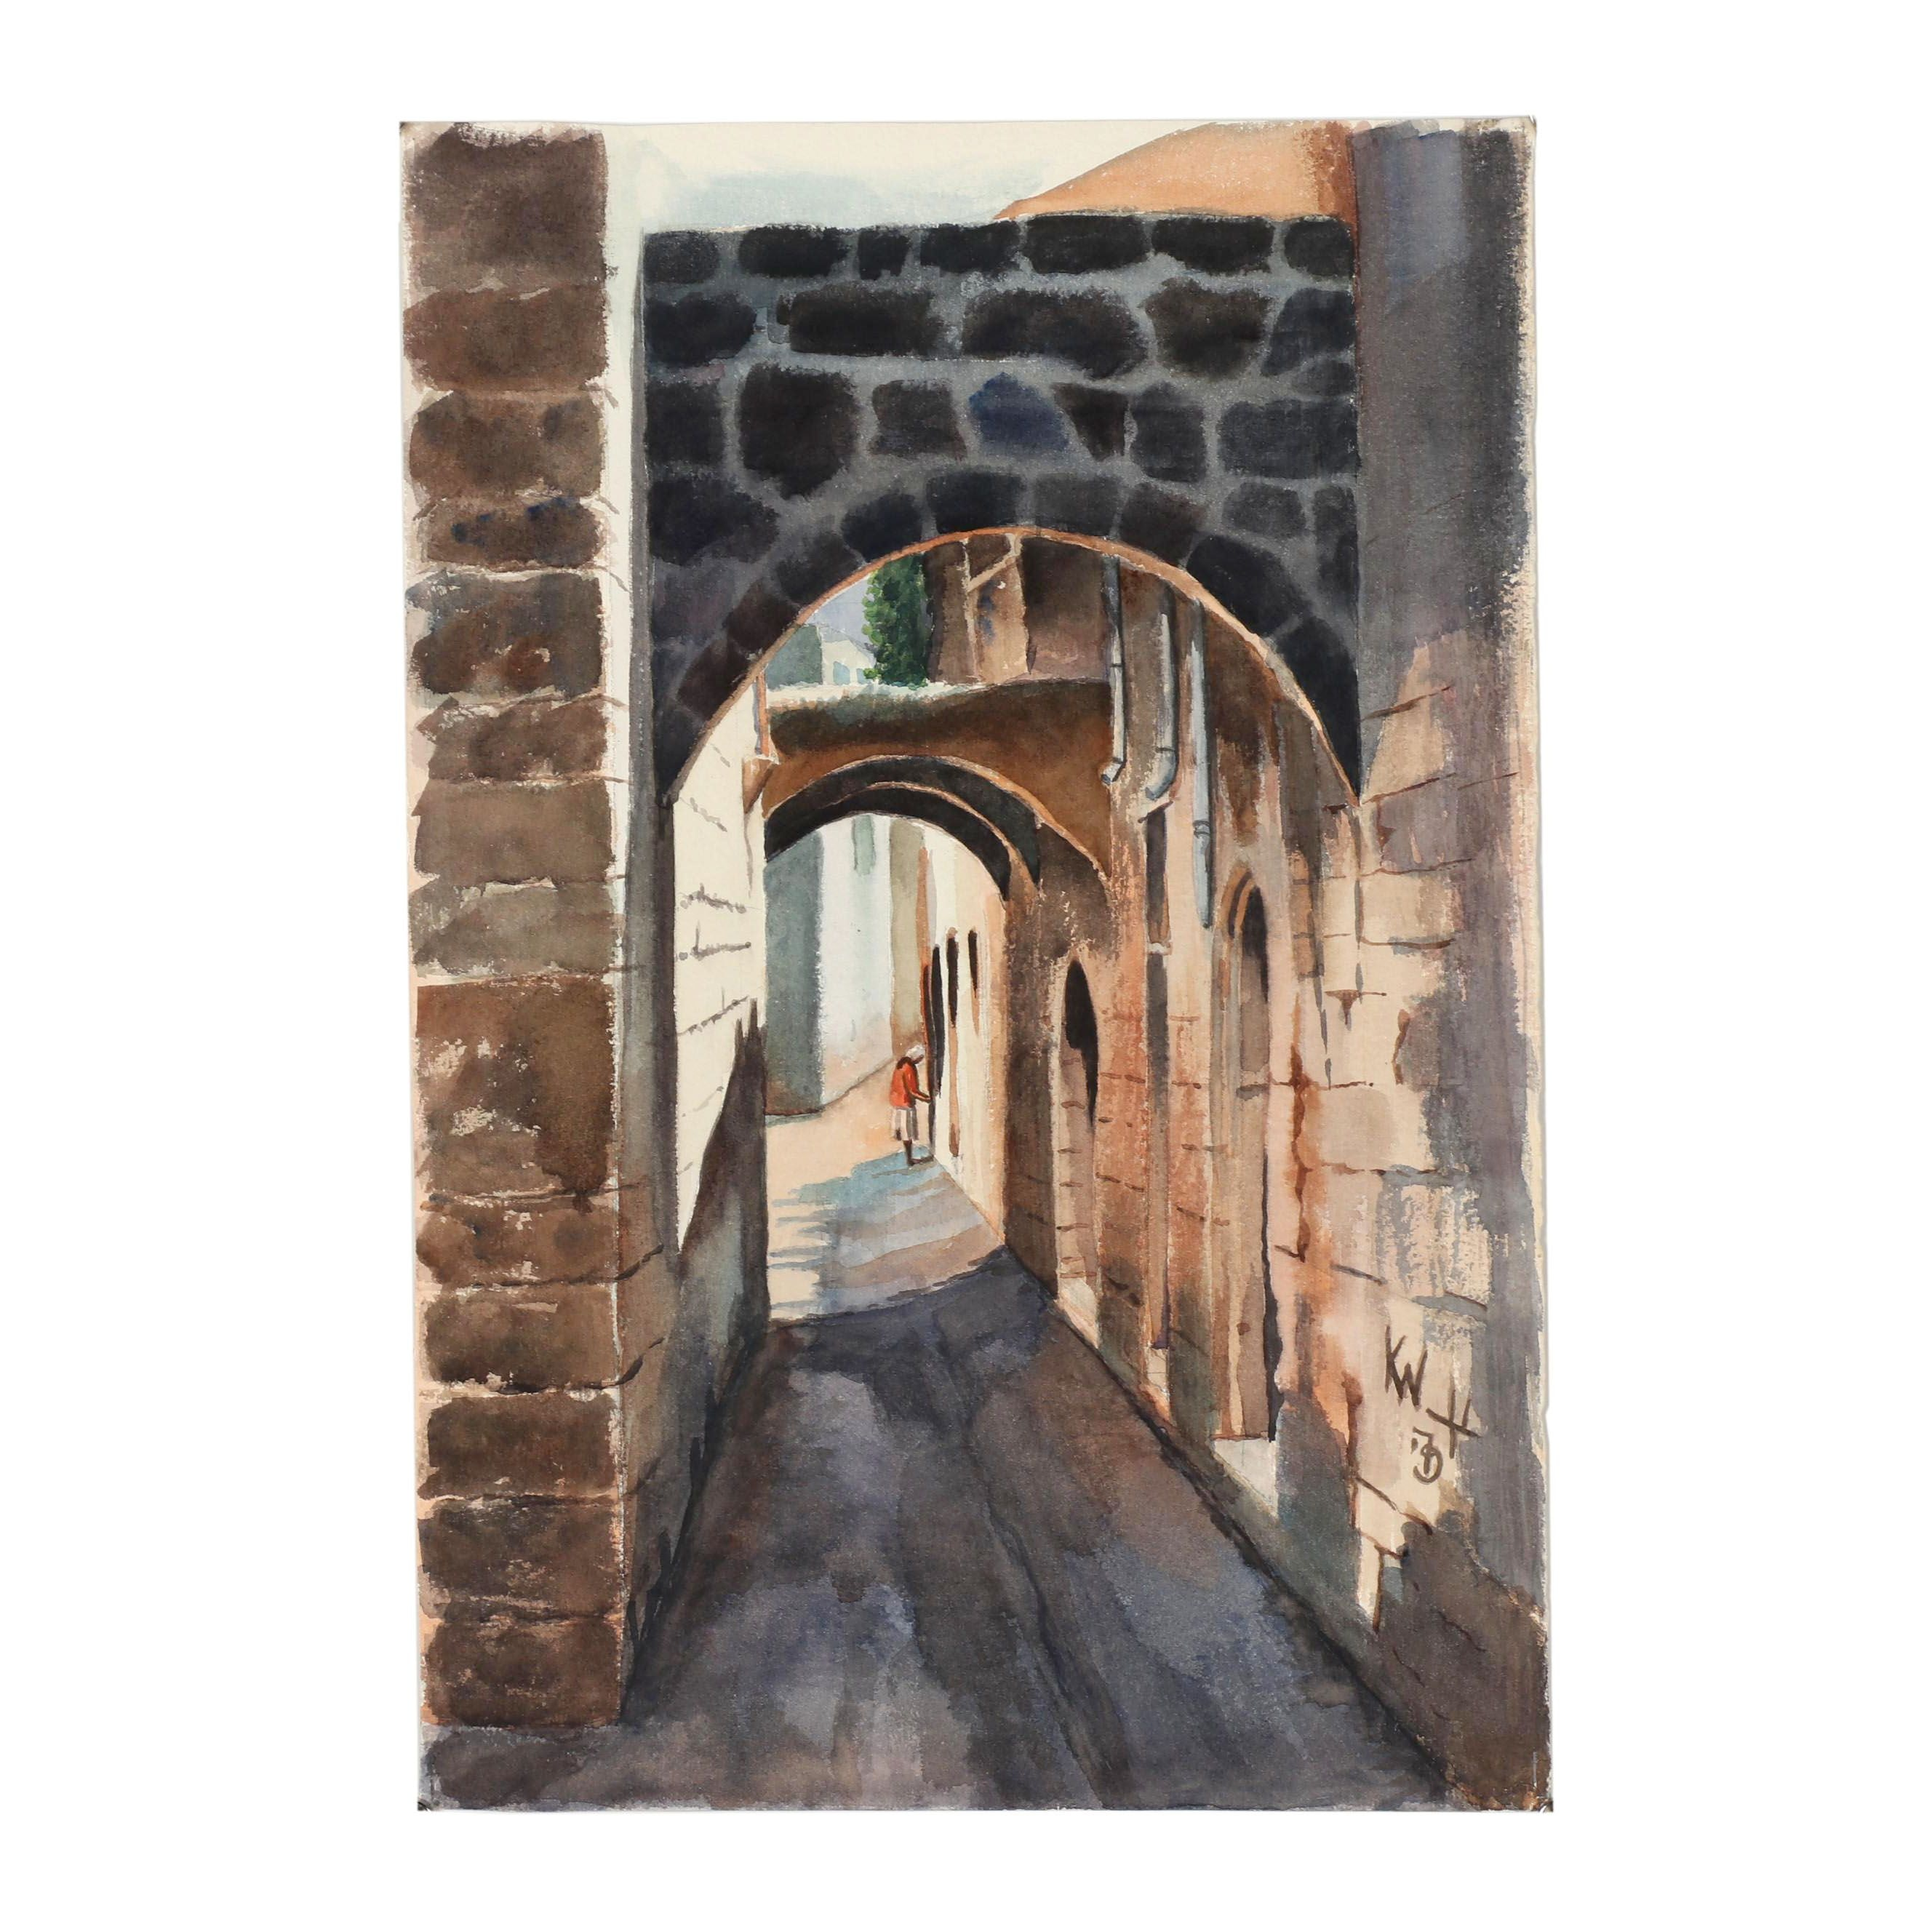 Late 20th Century Watercolor Painting of an Alleyway